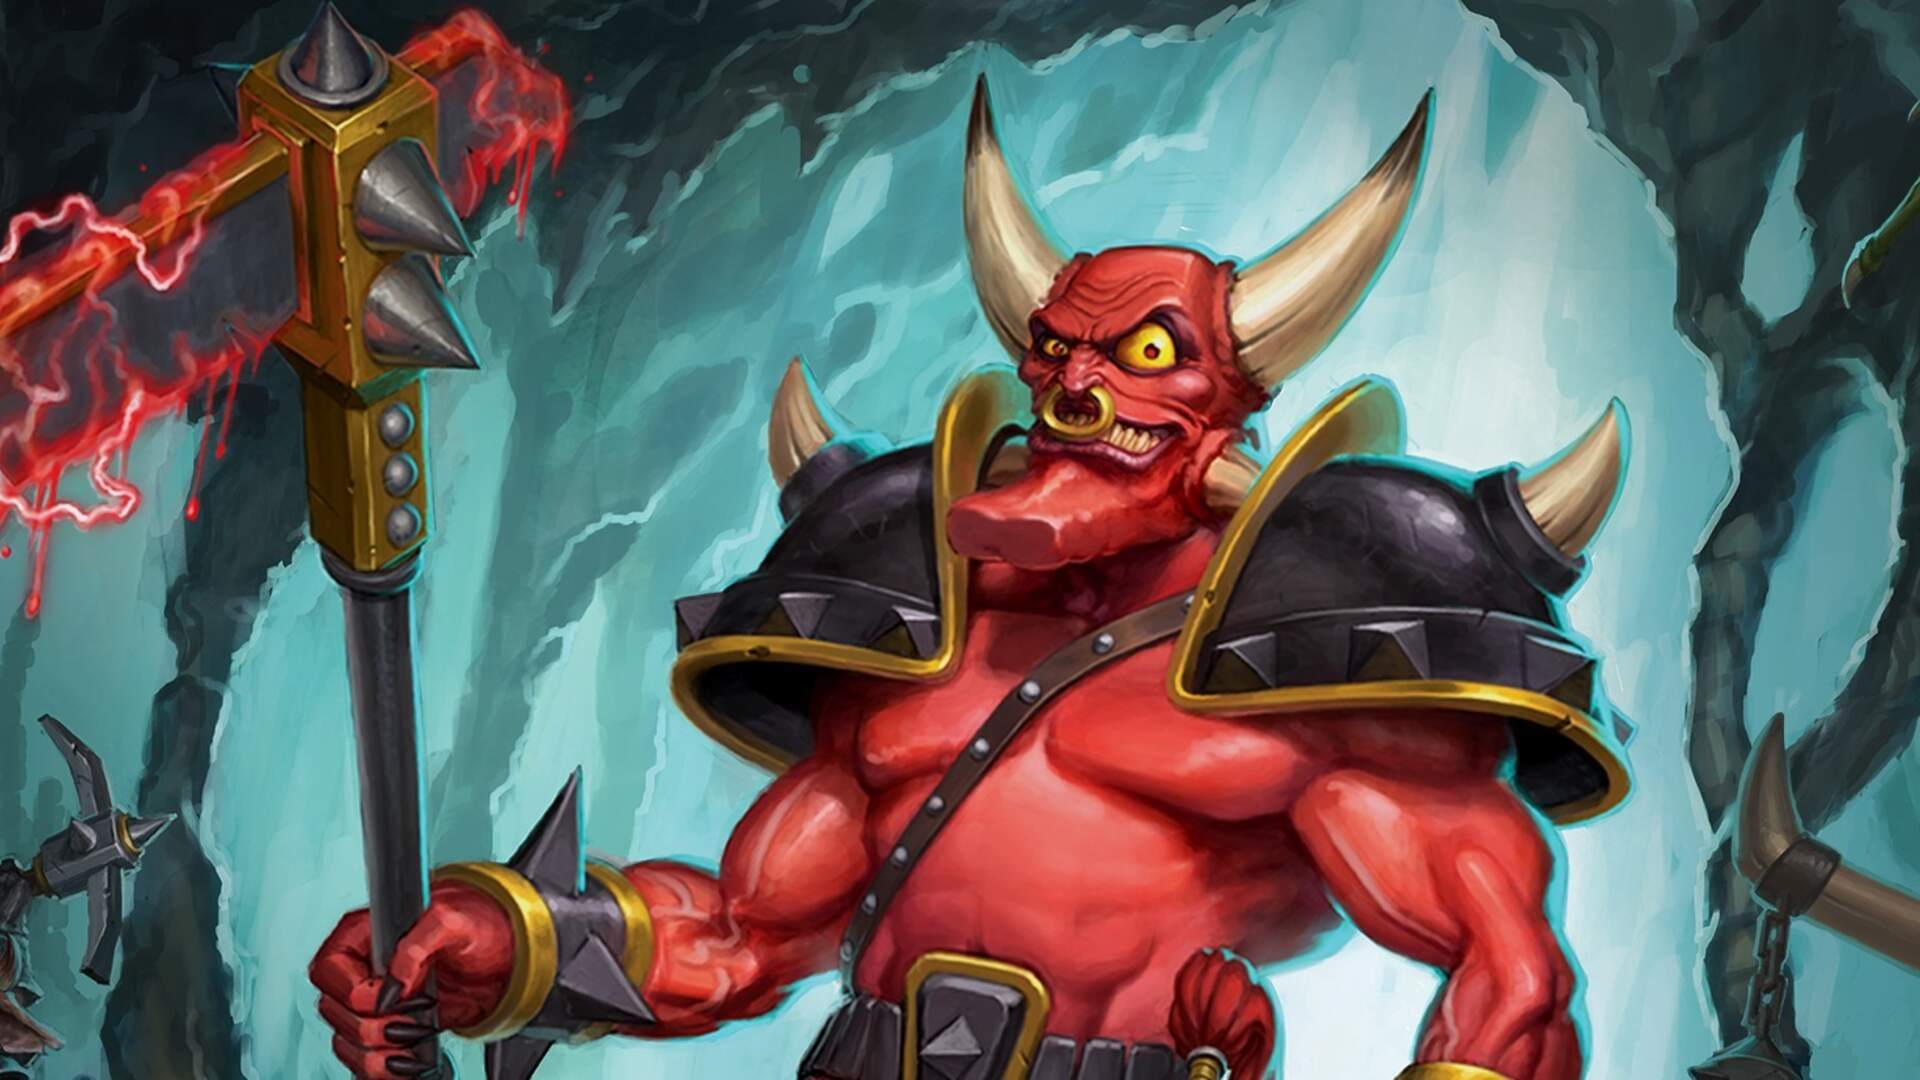 Dungeon Keeper: A Symptom of a Wider Problem